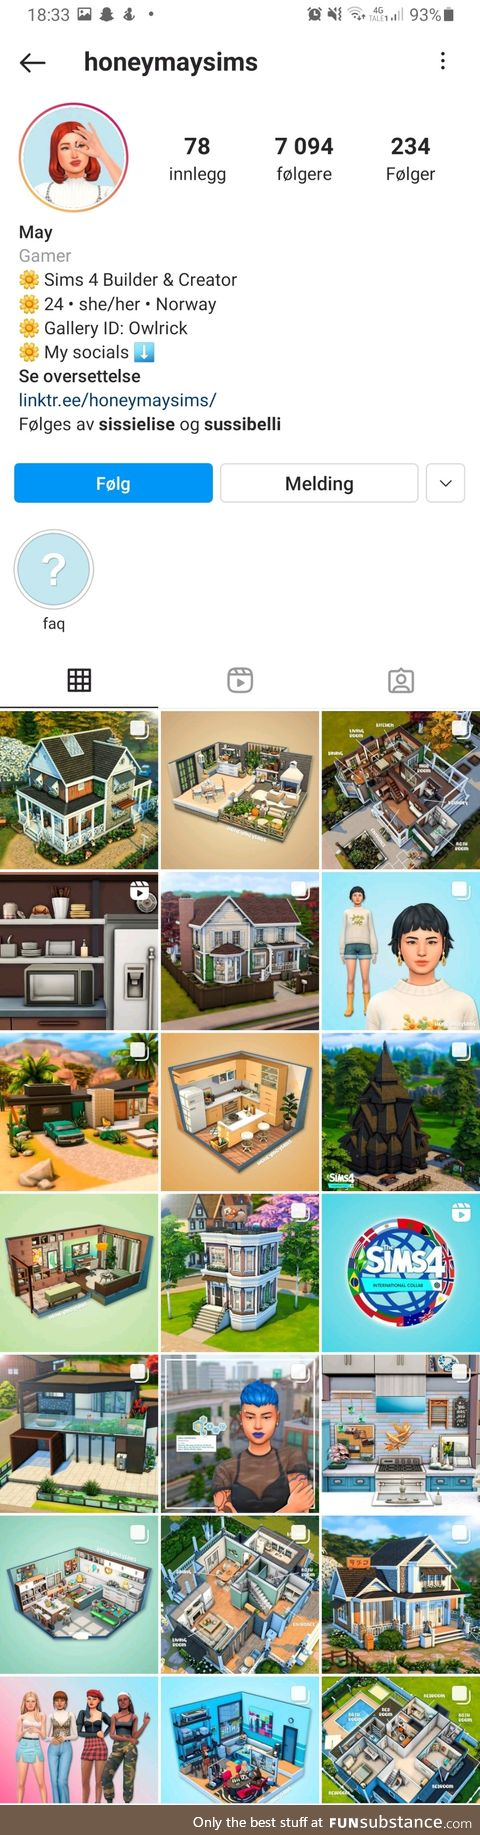 Anyone else who love sims? Found this profile. Great inspiration